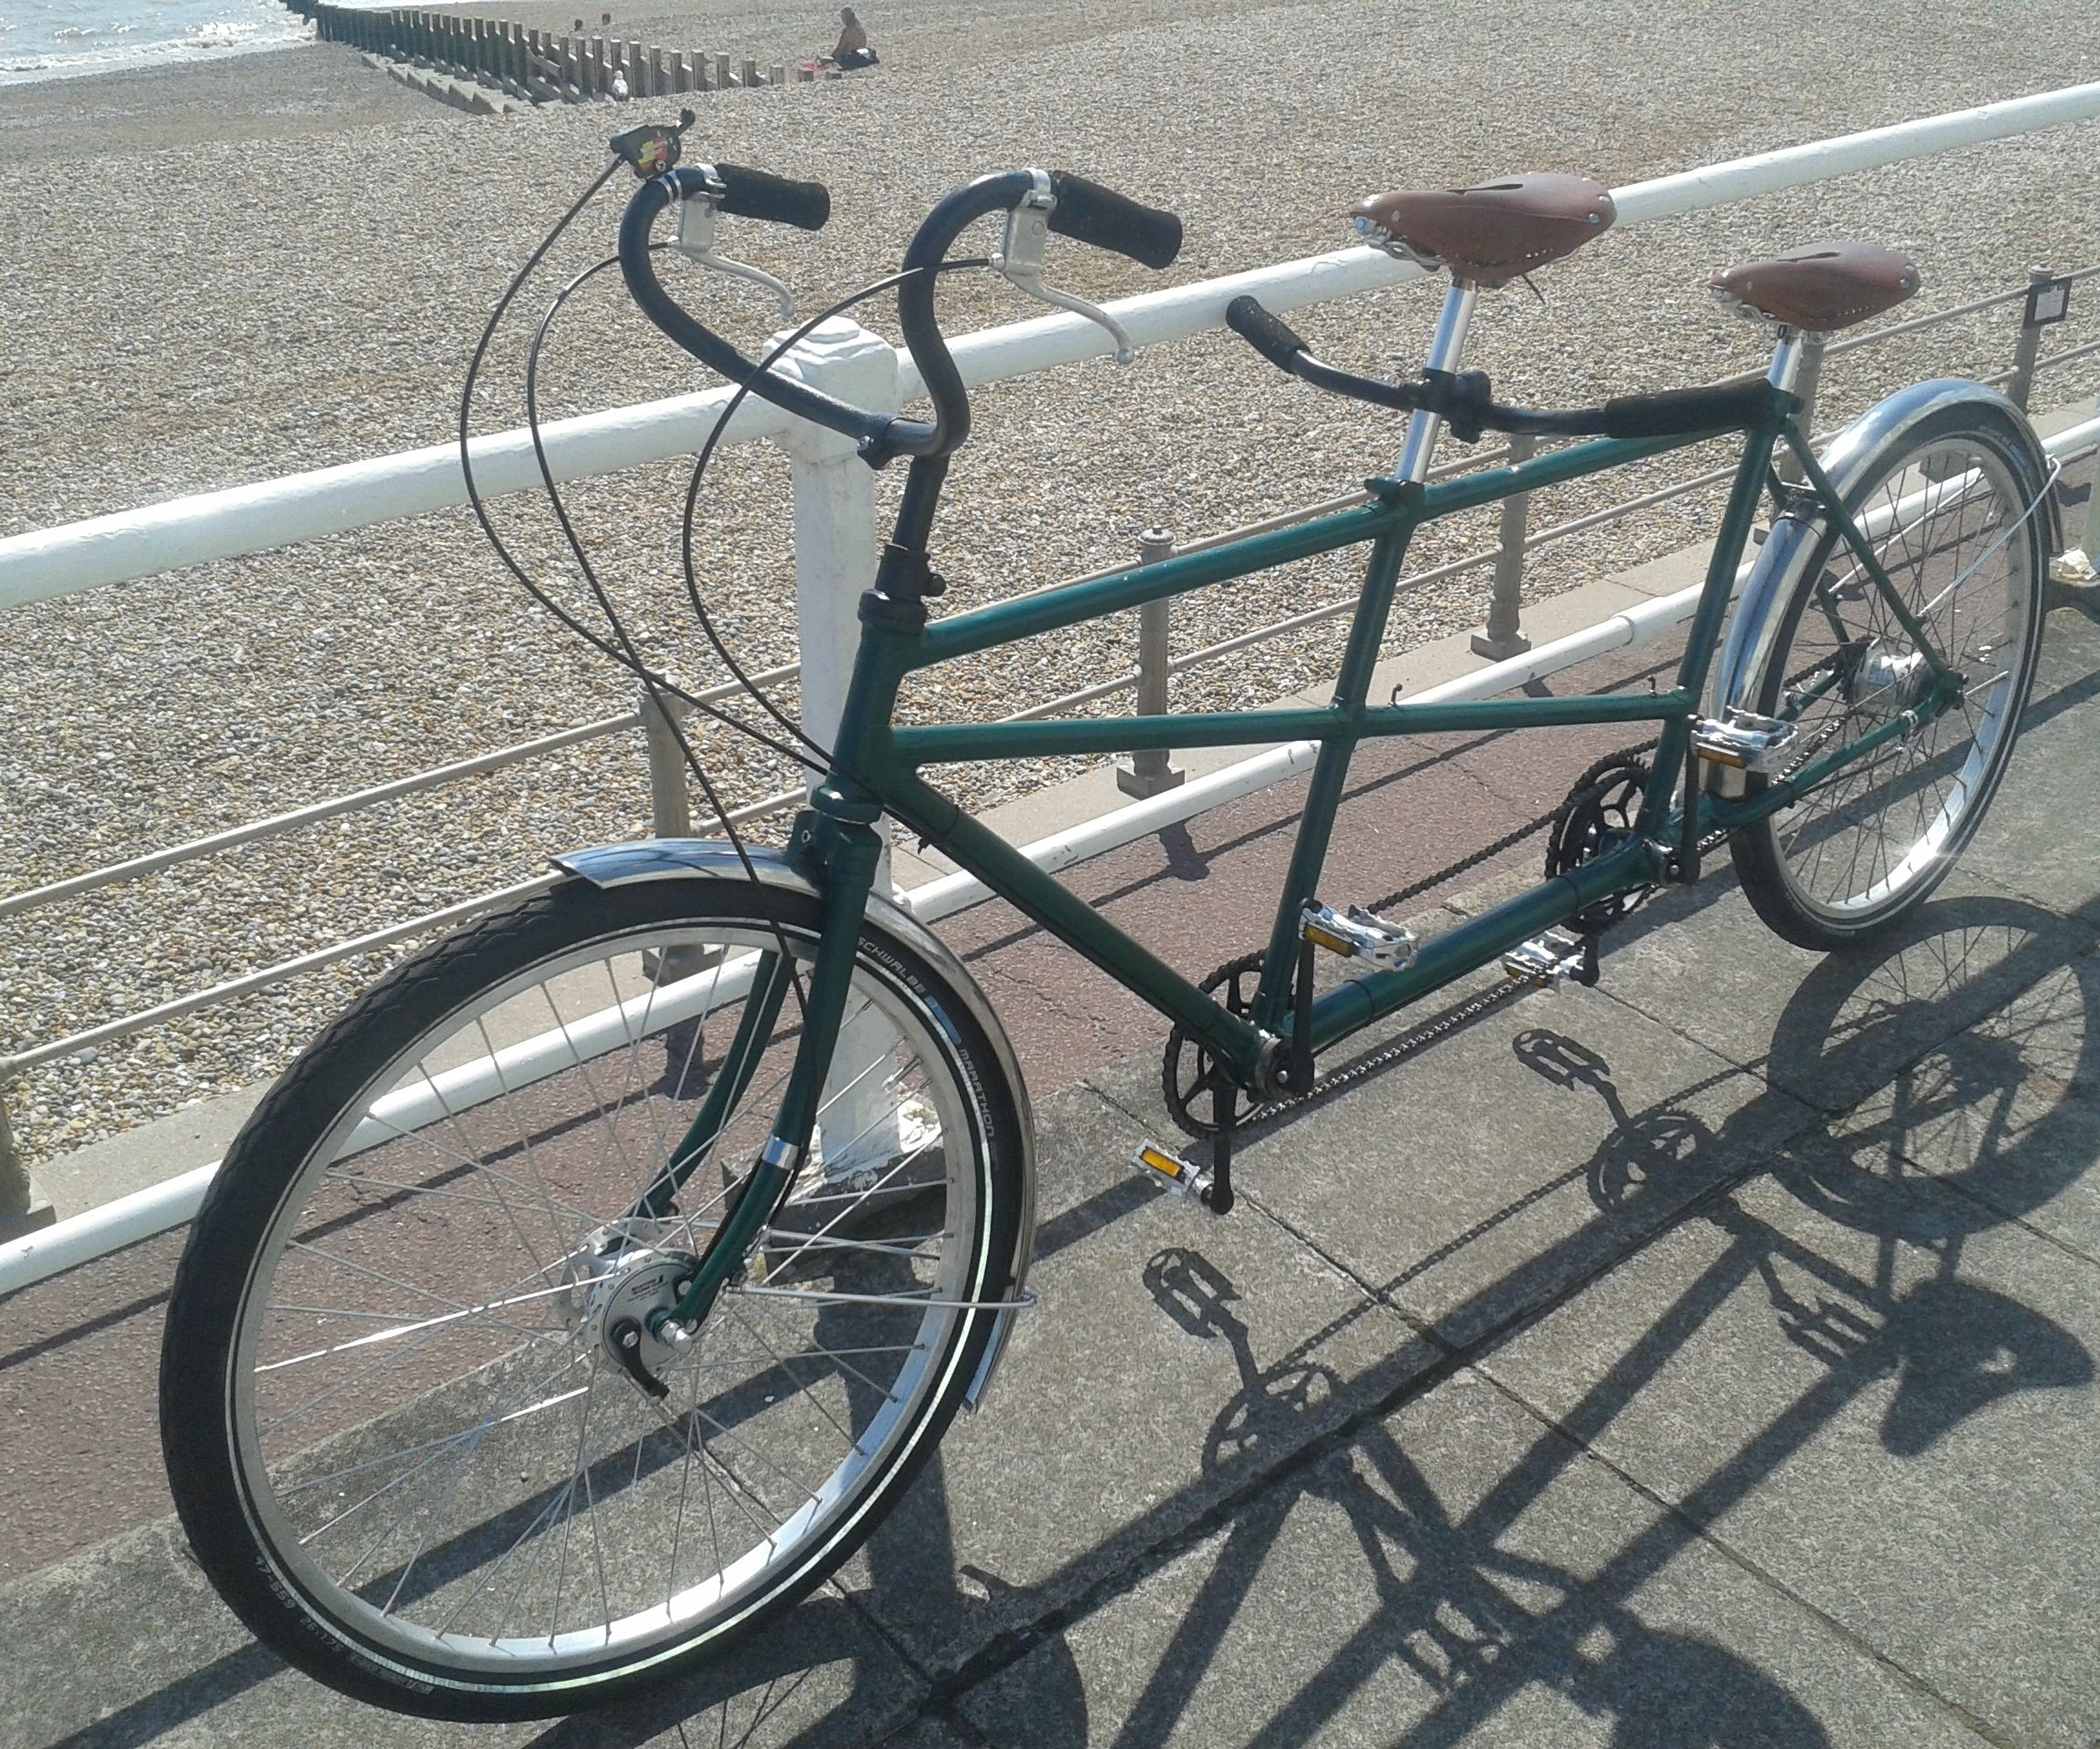 Restoring vintage tandem bicycle